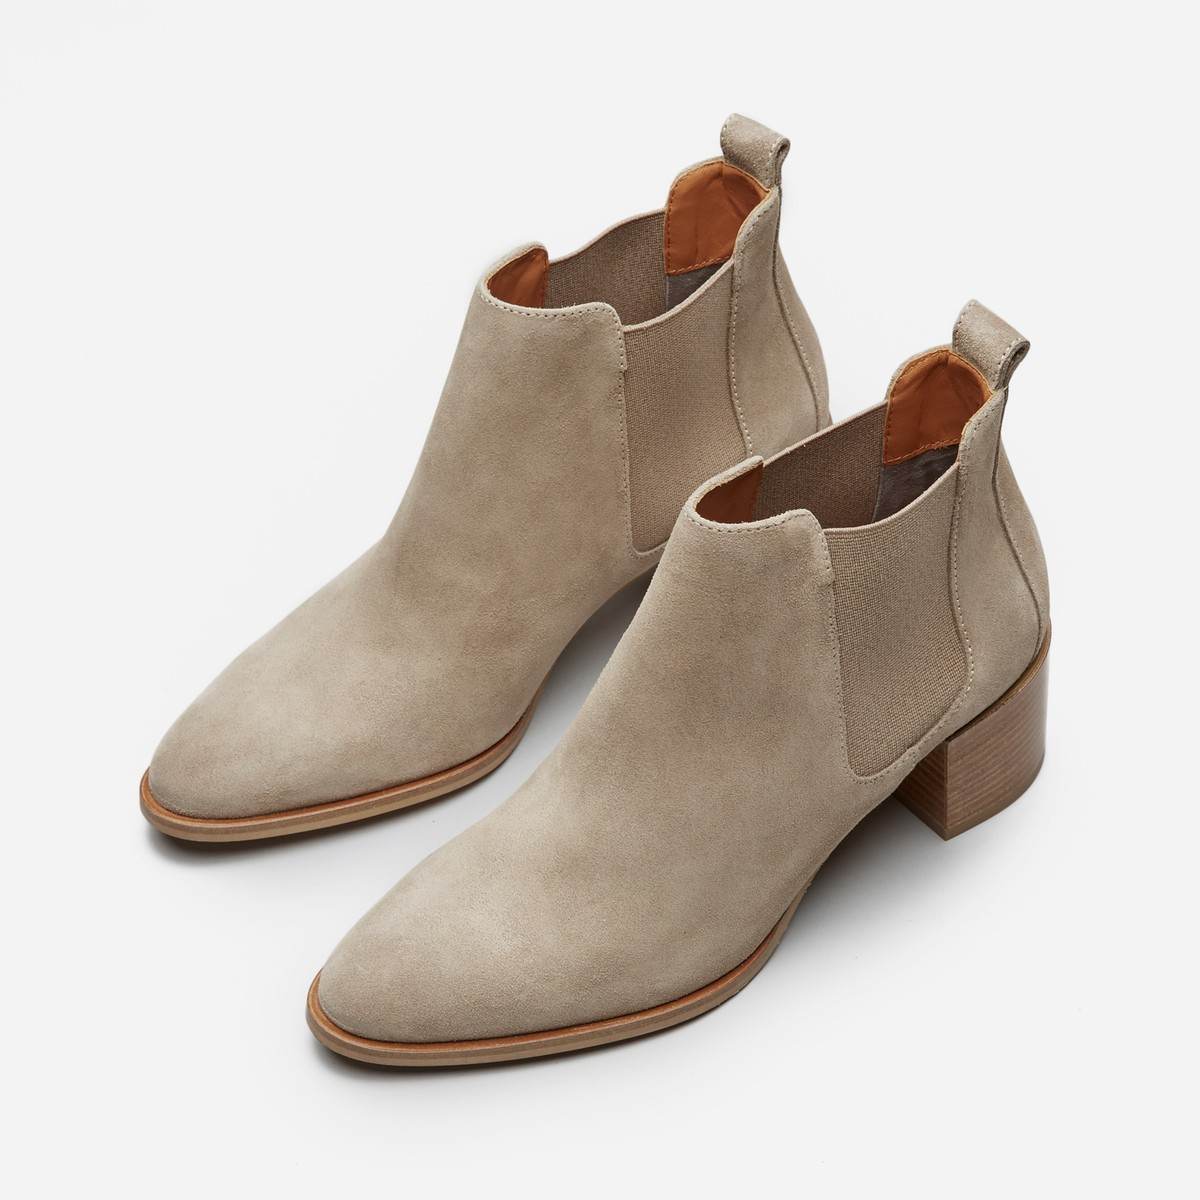 The Suede Heel Boot  by Everlane